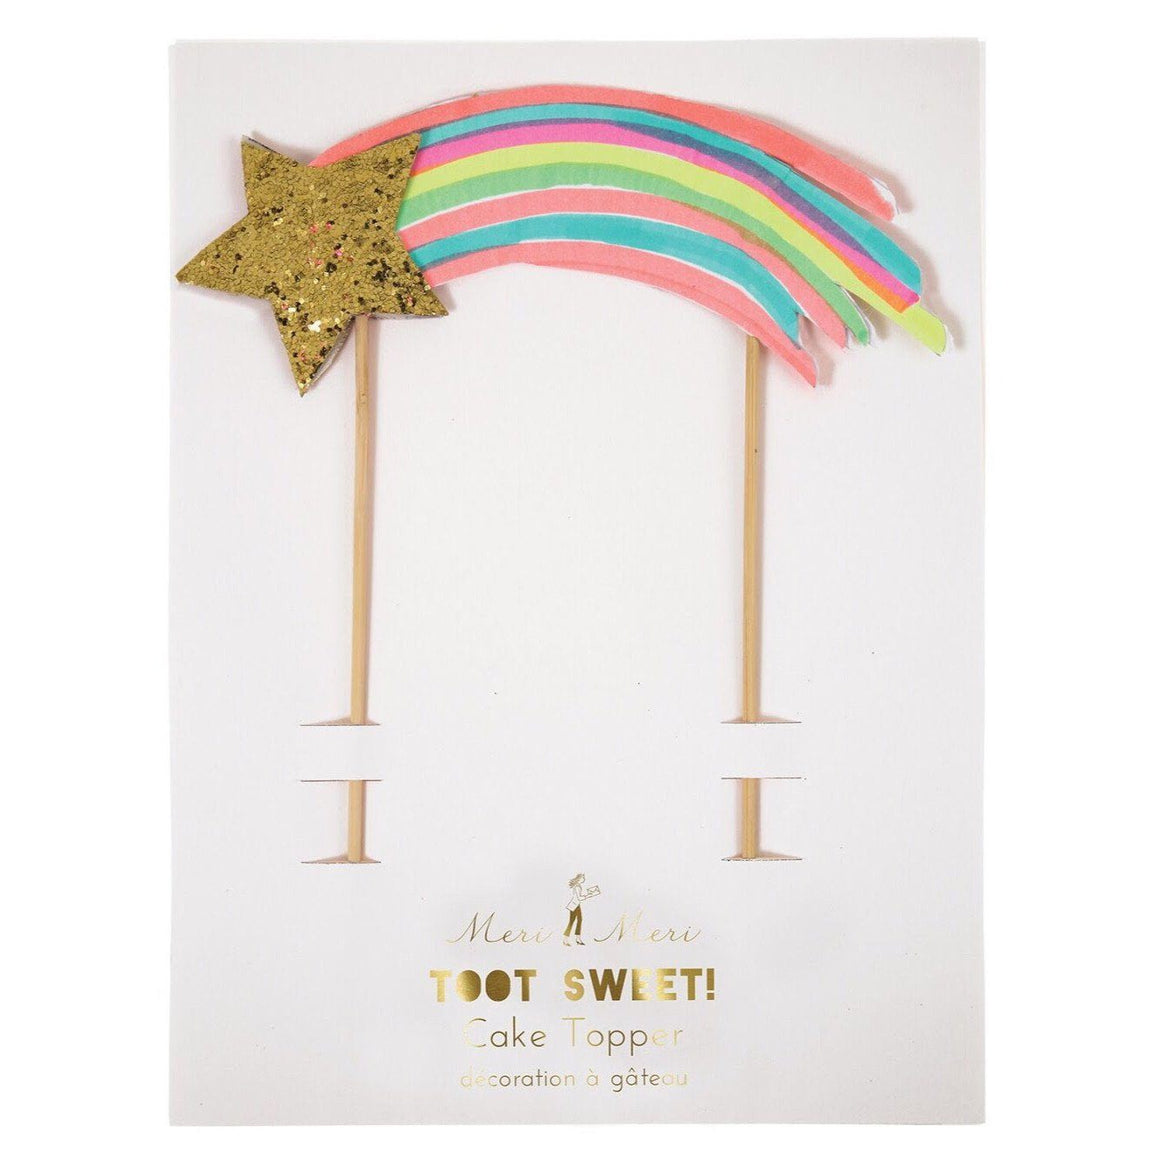 CAKE TOPPER - MERI MERI SHOOTING STAR, Picks + Toppers, MERI MERI - Bon + Co. Party Studio